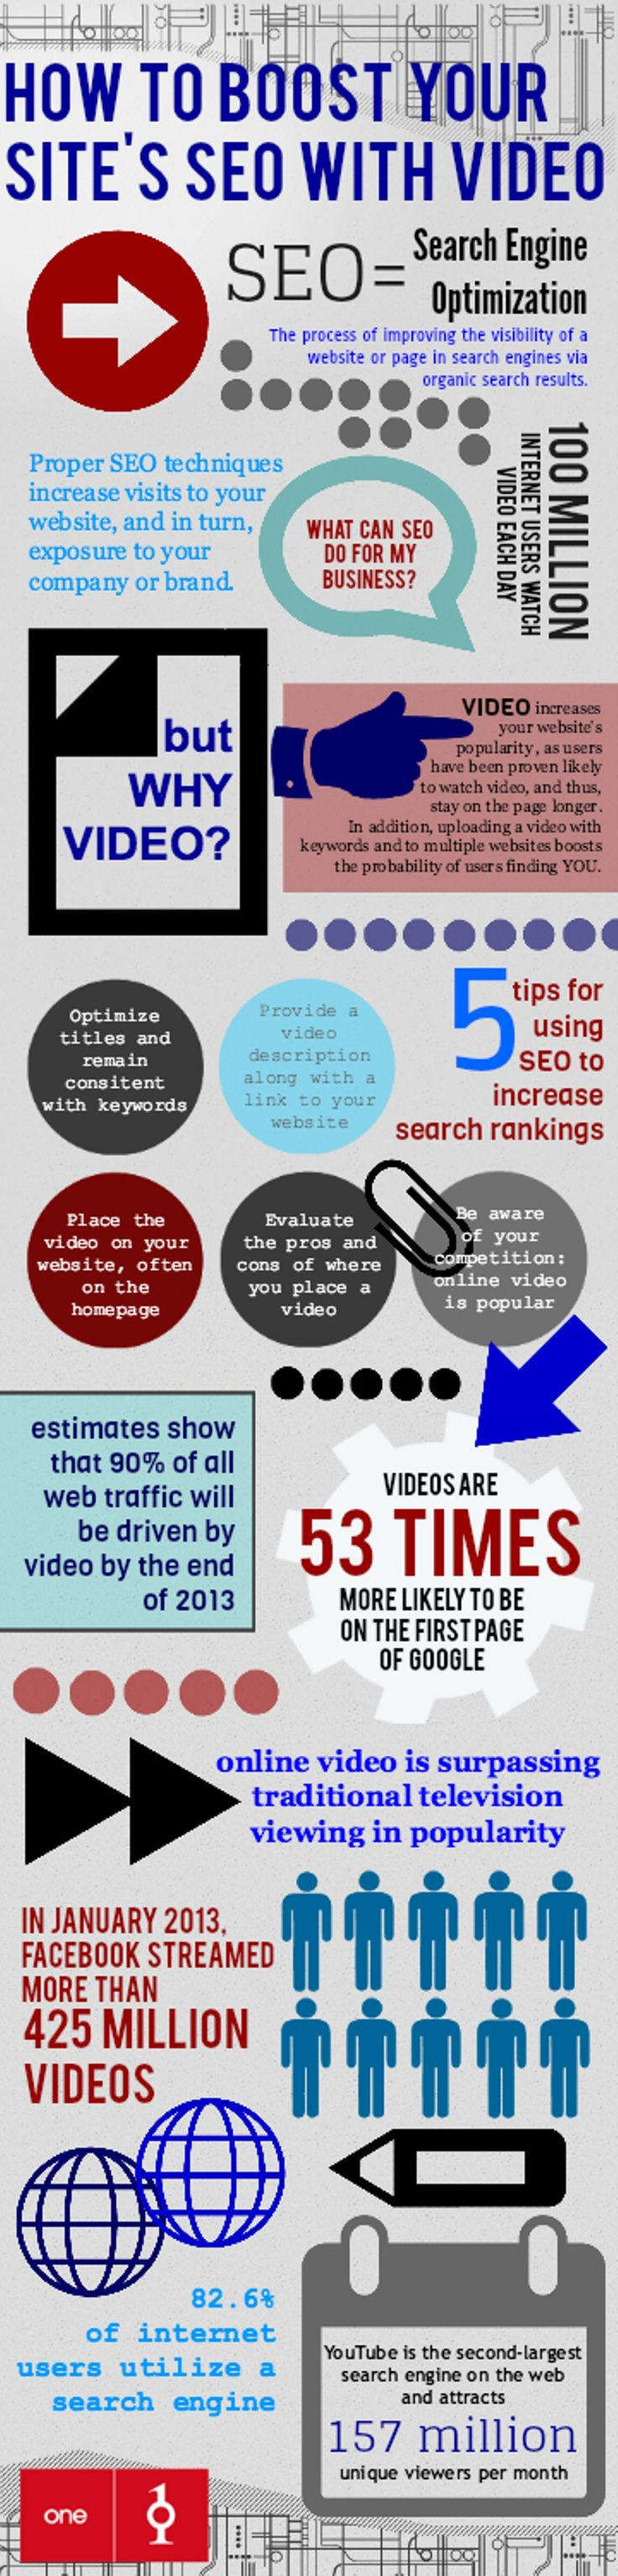 How to Boost your Site's SEO with Video F6dd22d1057eb32a94bca70738ef8033